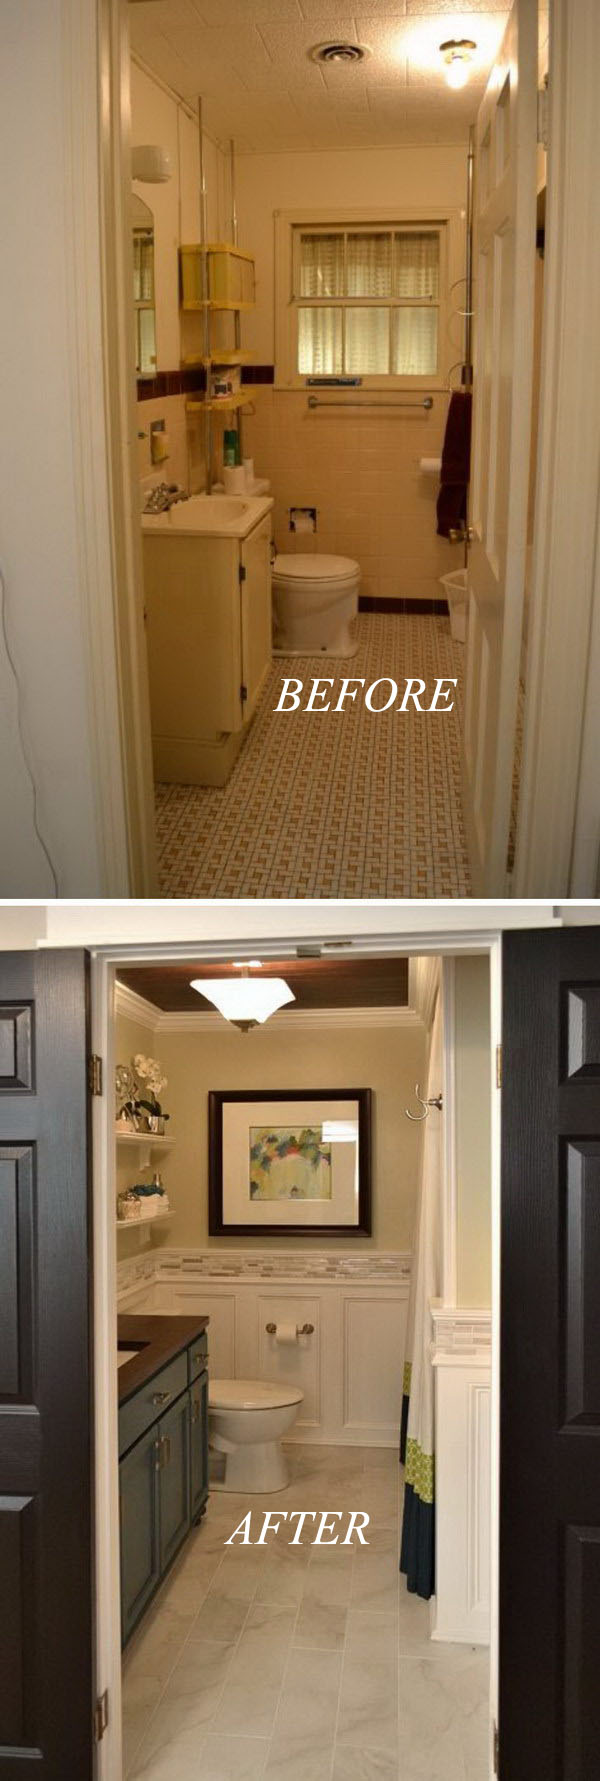 33 inspirational small bathroom remodel before and after diy design decor - Small bathroom remodeling designs ...